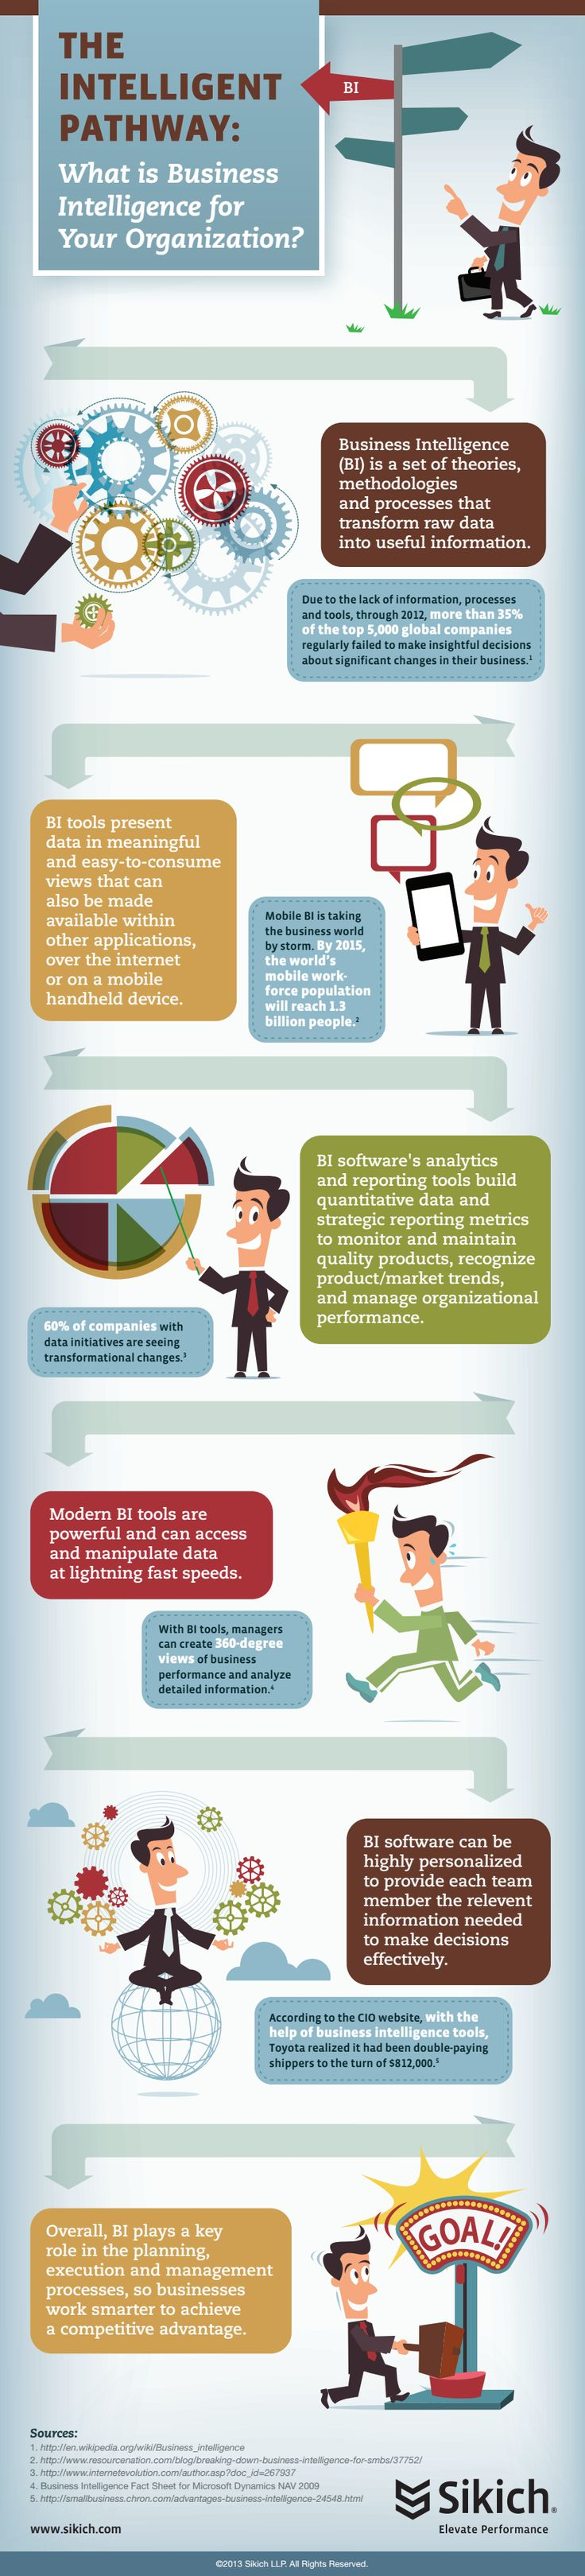 What Is Business Intelligence For Your Organization?  #Infographic #Business #Businessintelligence